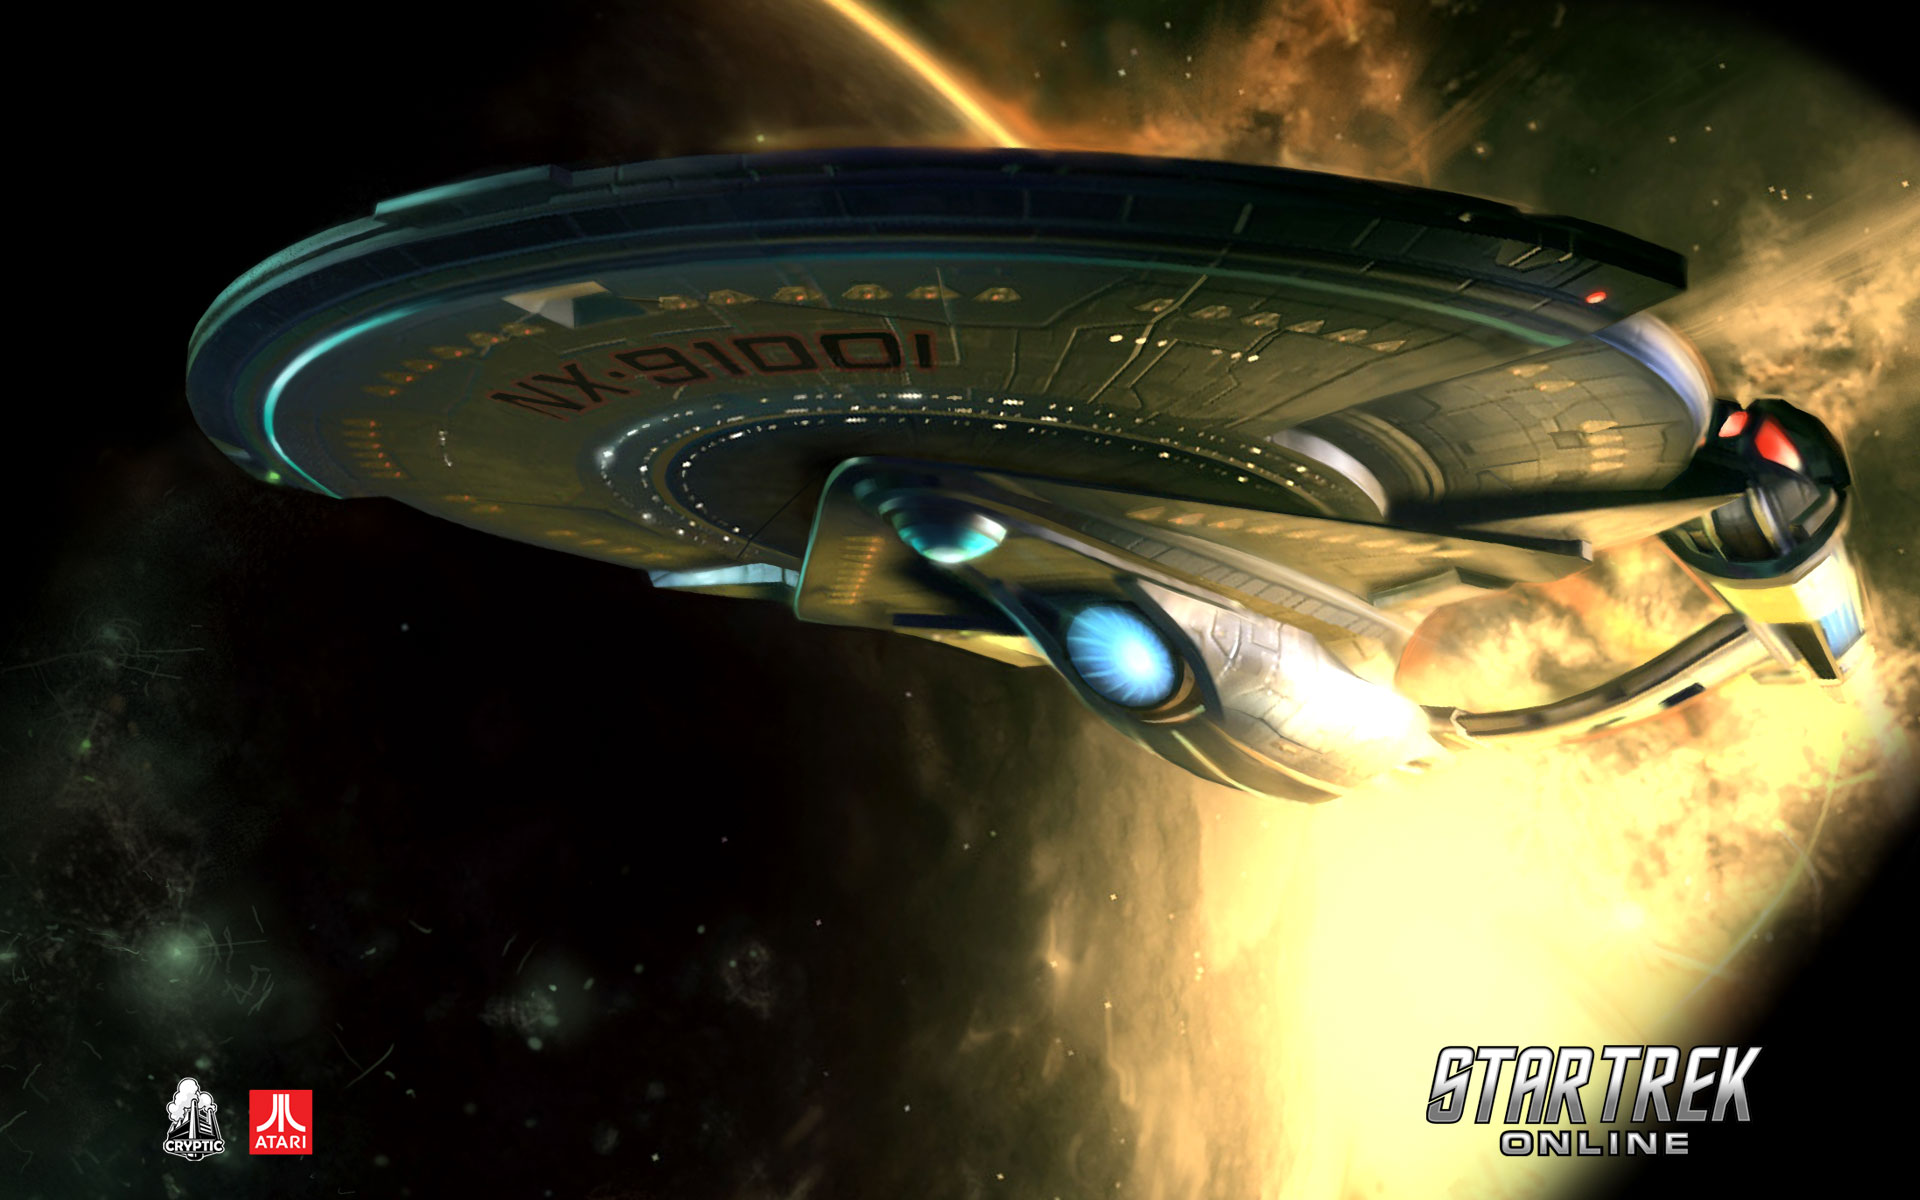 New Star Trek Online HD Wallpapers ImageBankbiz 1920x1200